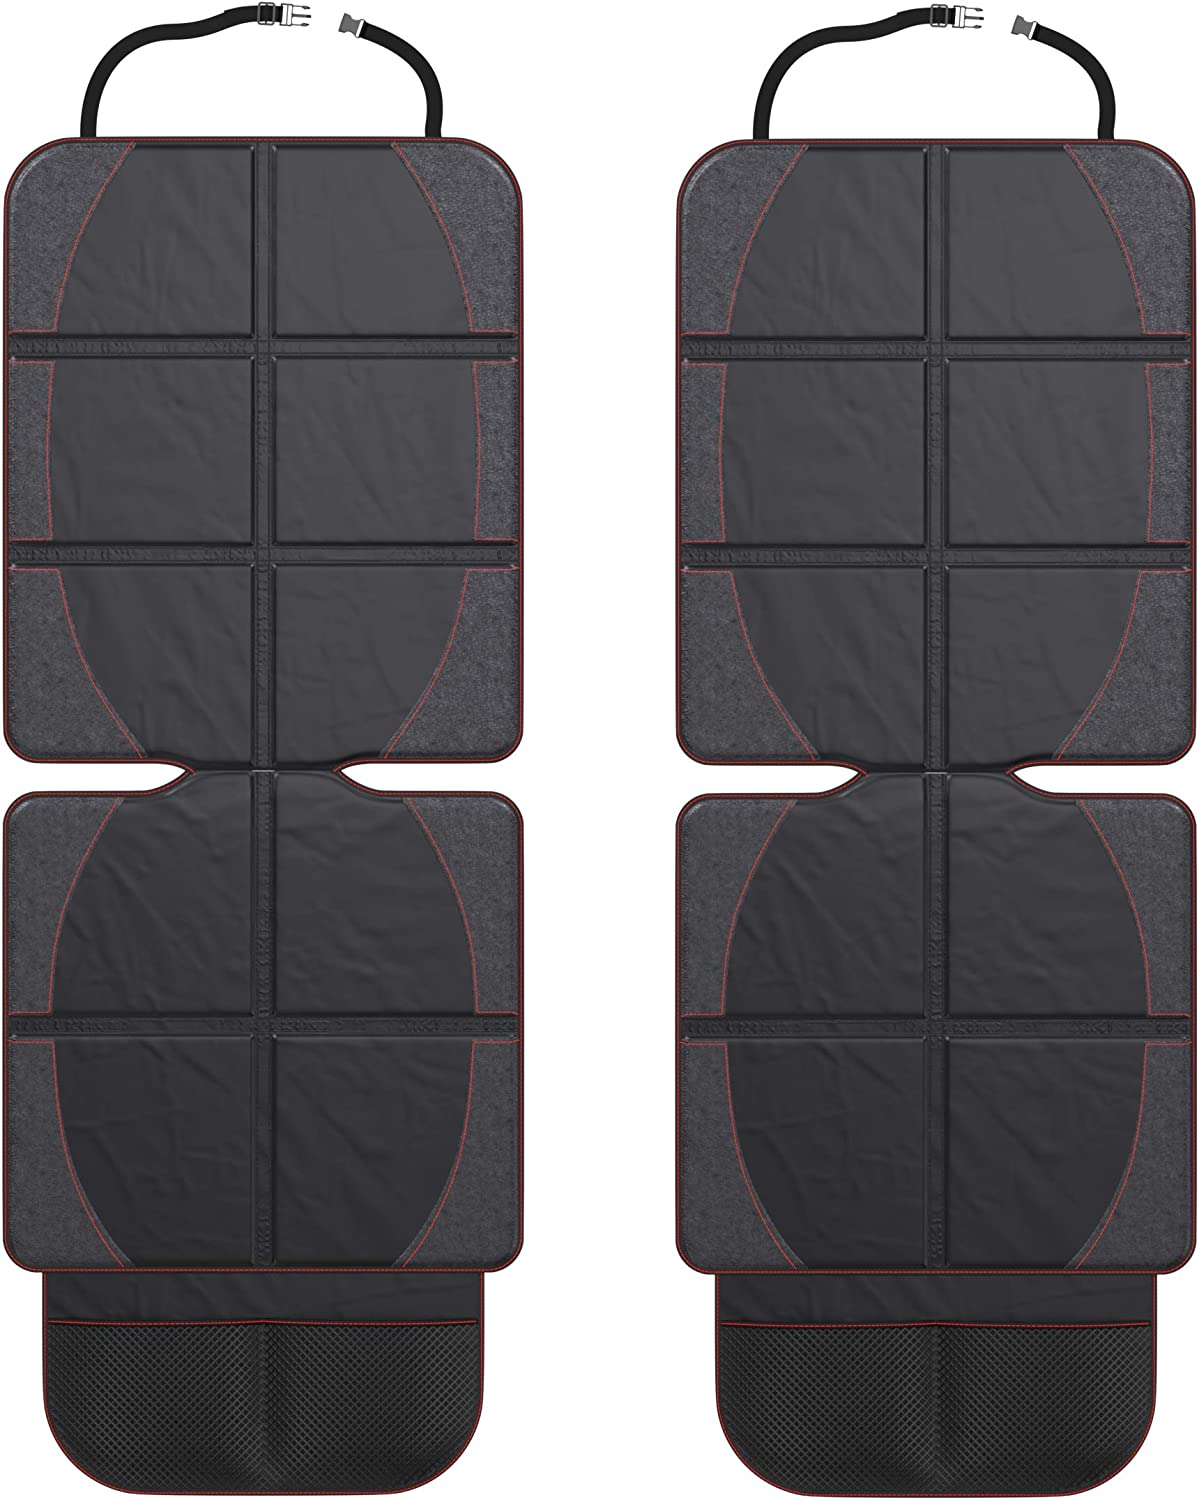 FORTEM Car Seat Protector, Durable Waterproof Backseat Cover for Baby, Protects Against Damage (2 Pack)